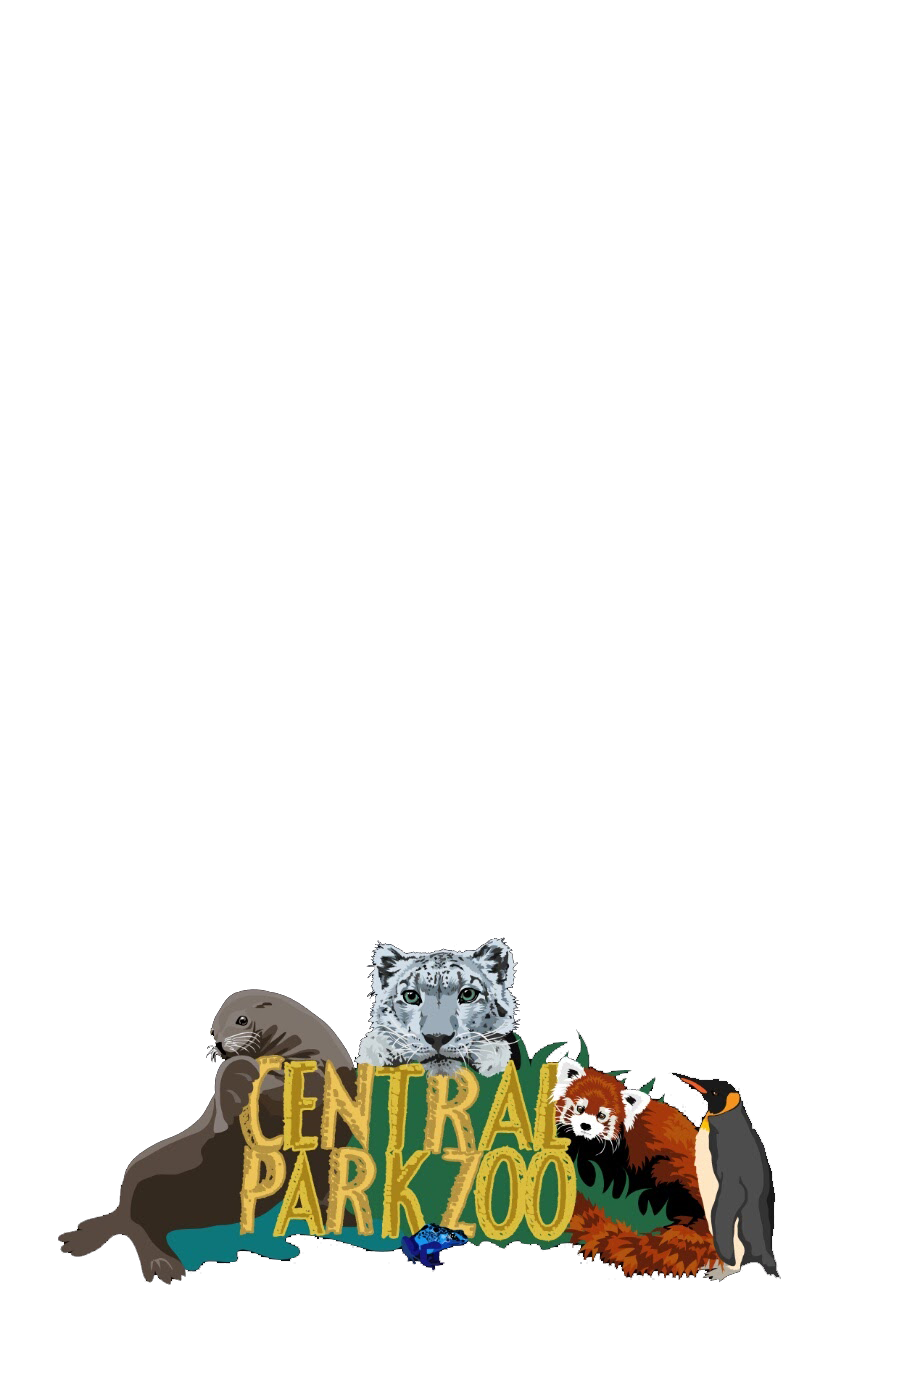 Central park zoo logo clipart banner transparent library Central Park Zoo Snapchat Geofilter | Zolenda banner transparent library